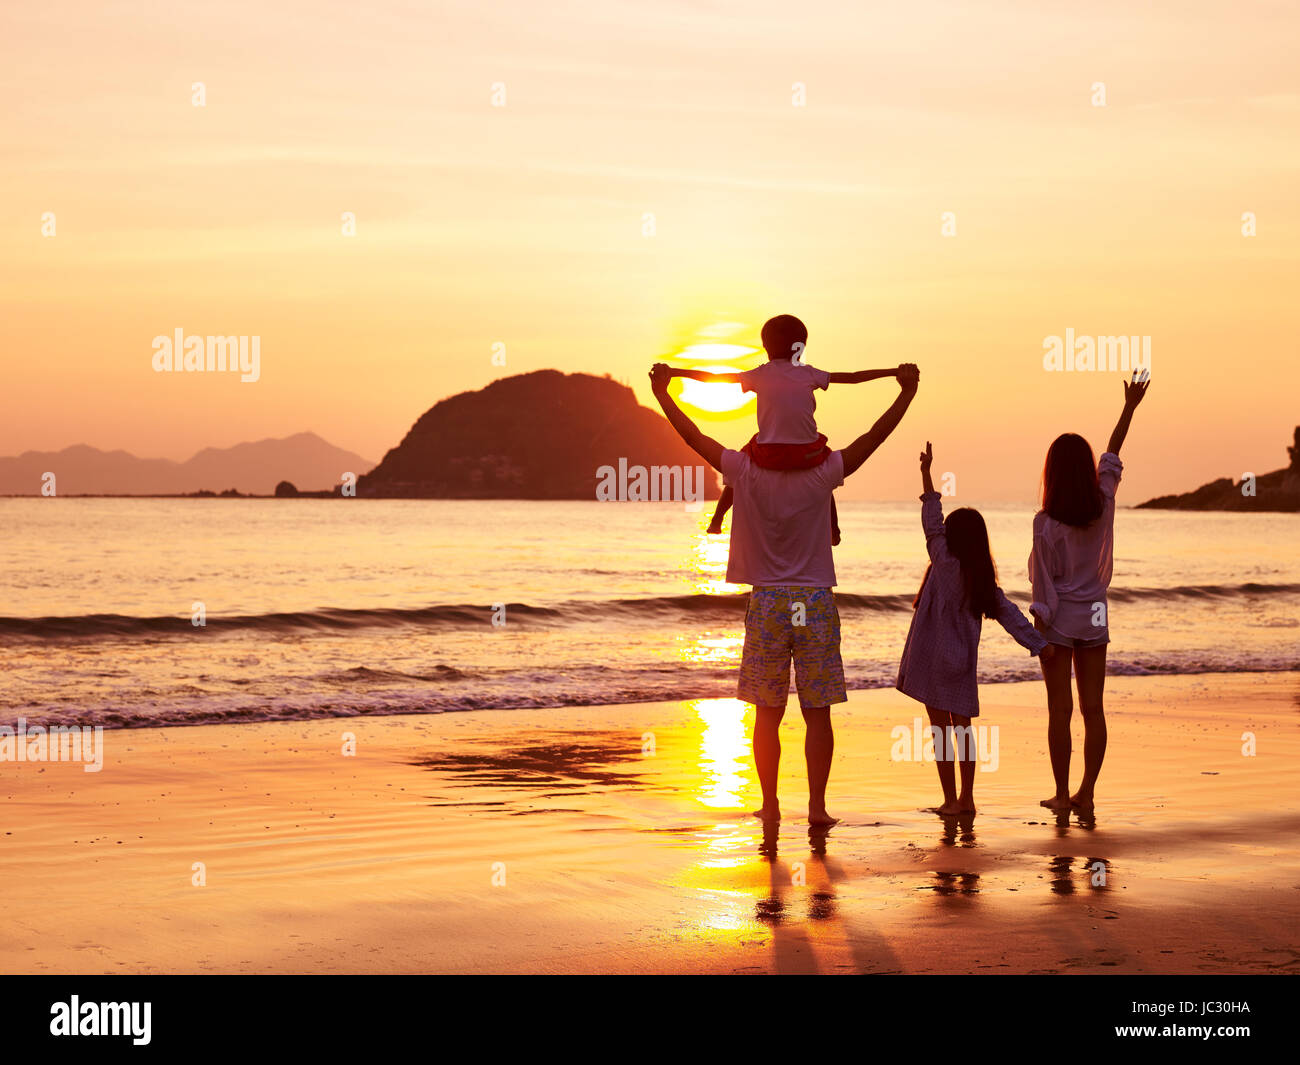 asian family standing on beach watching and enjoying the sunrise or sunset. - Stock Image